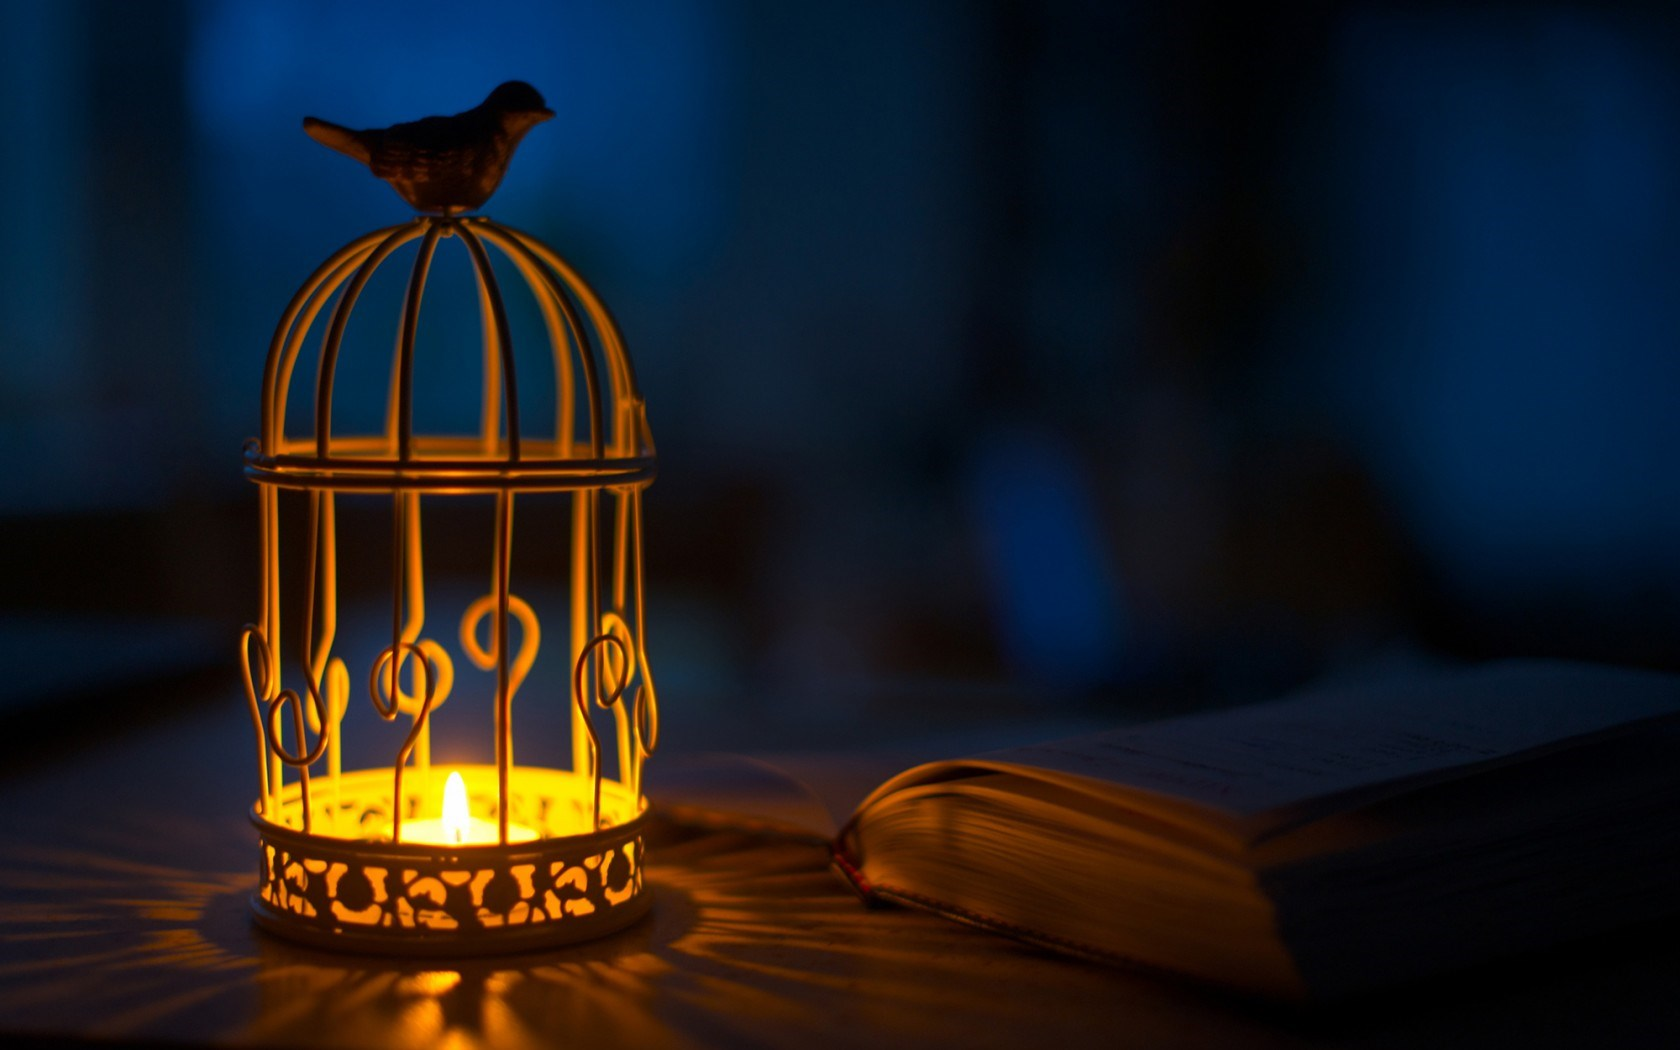 Lantern Bird Candle Shadows Light Book